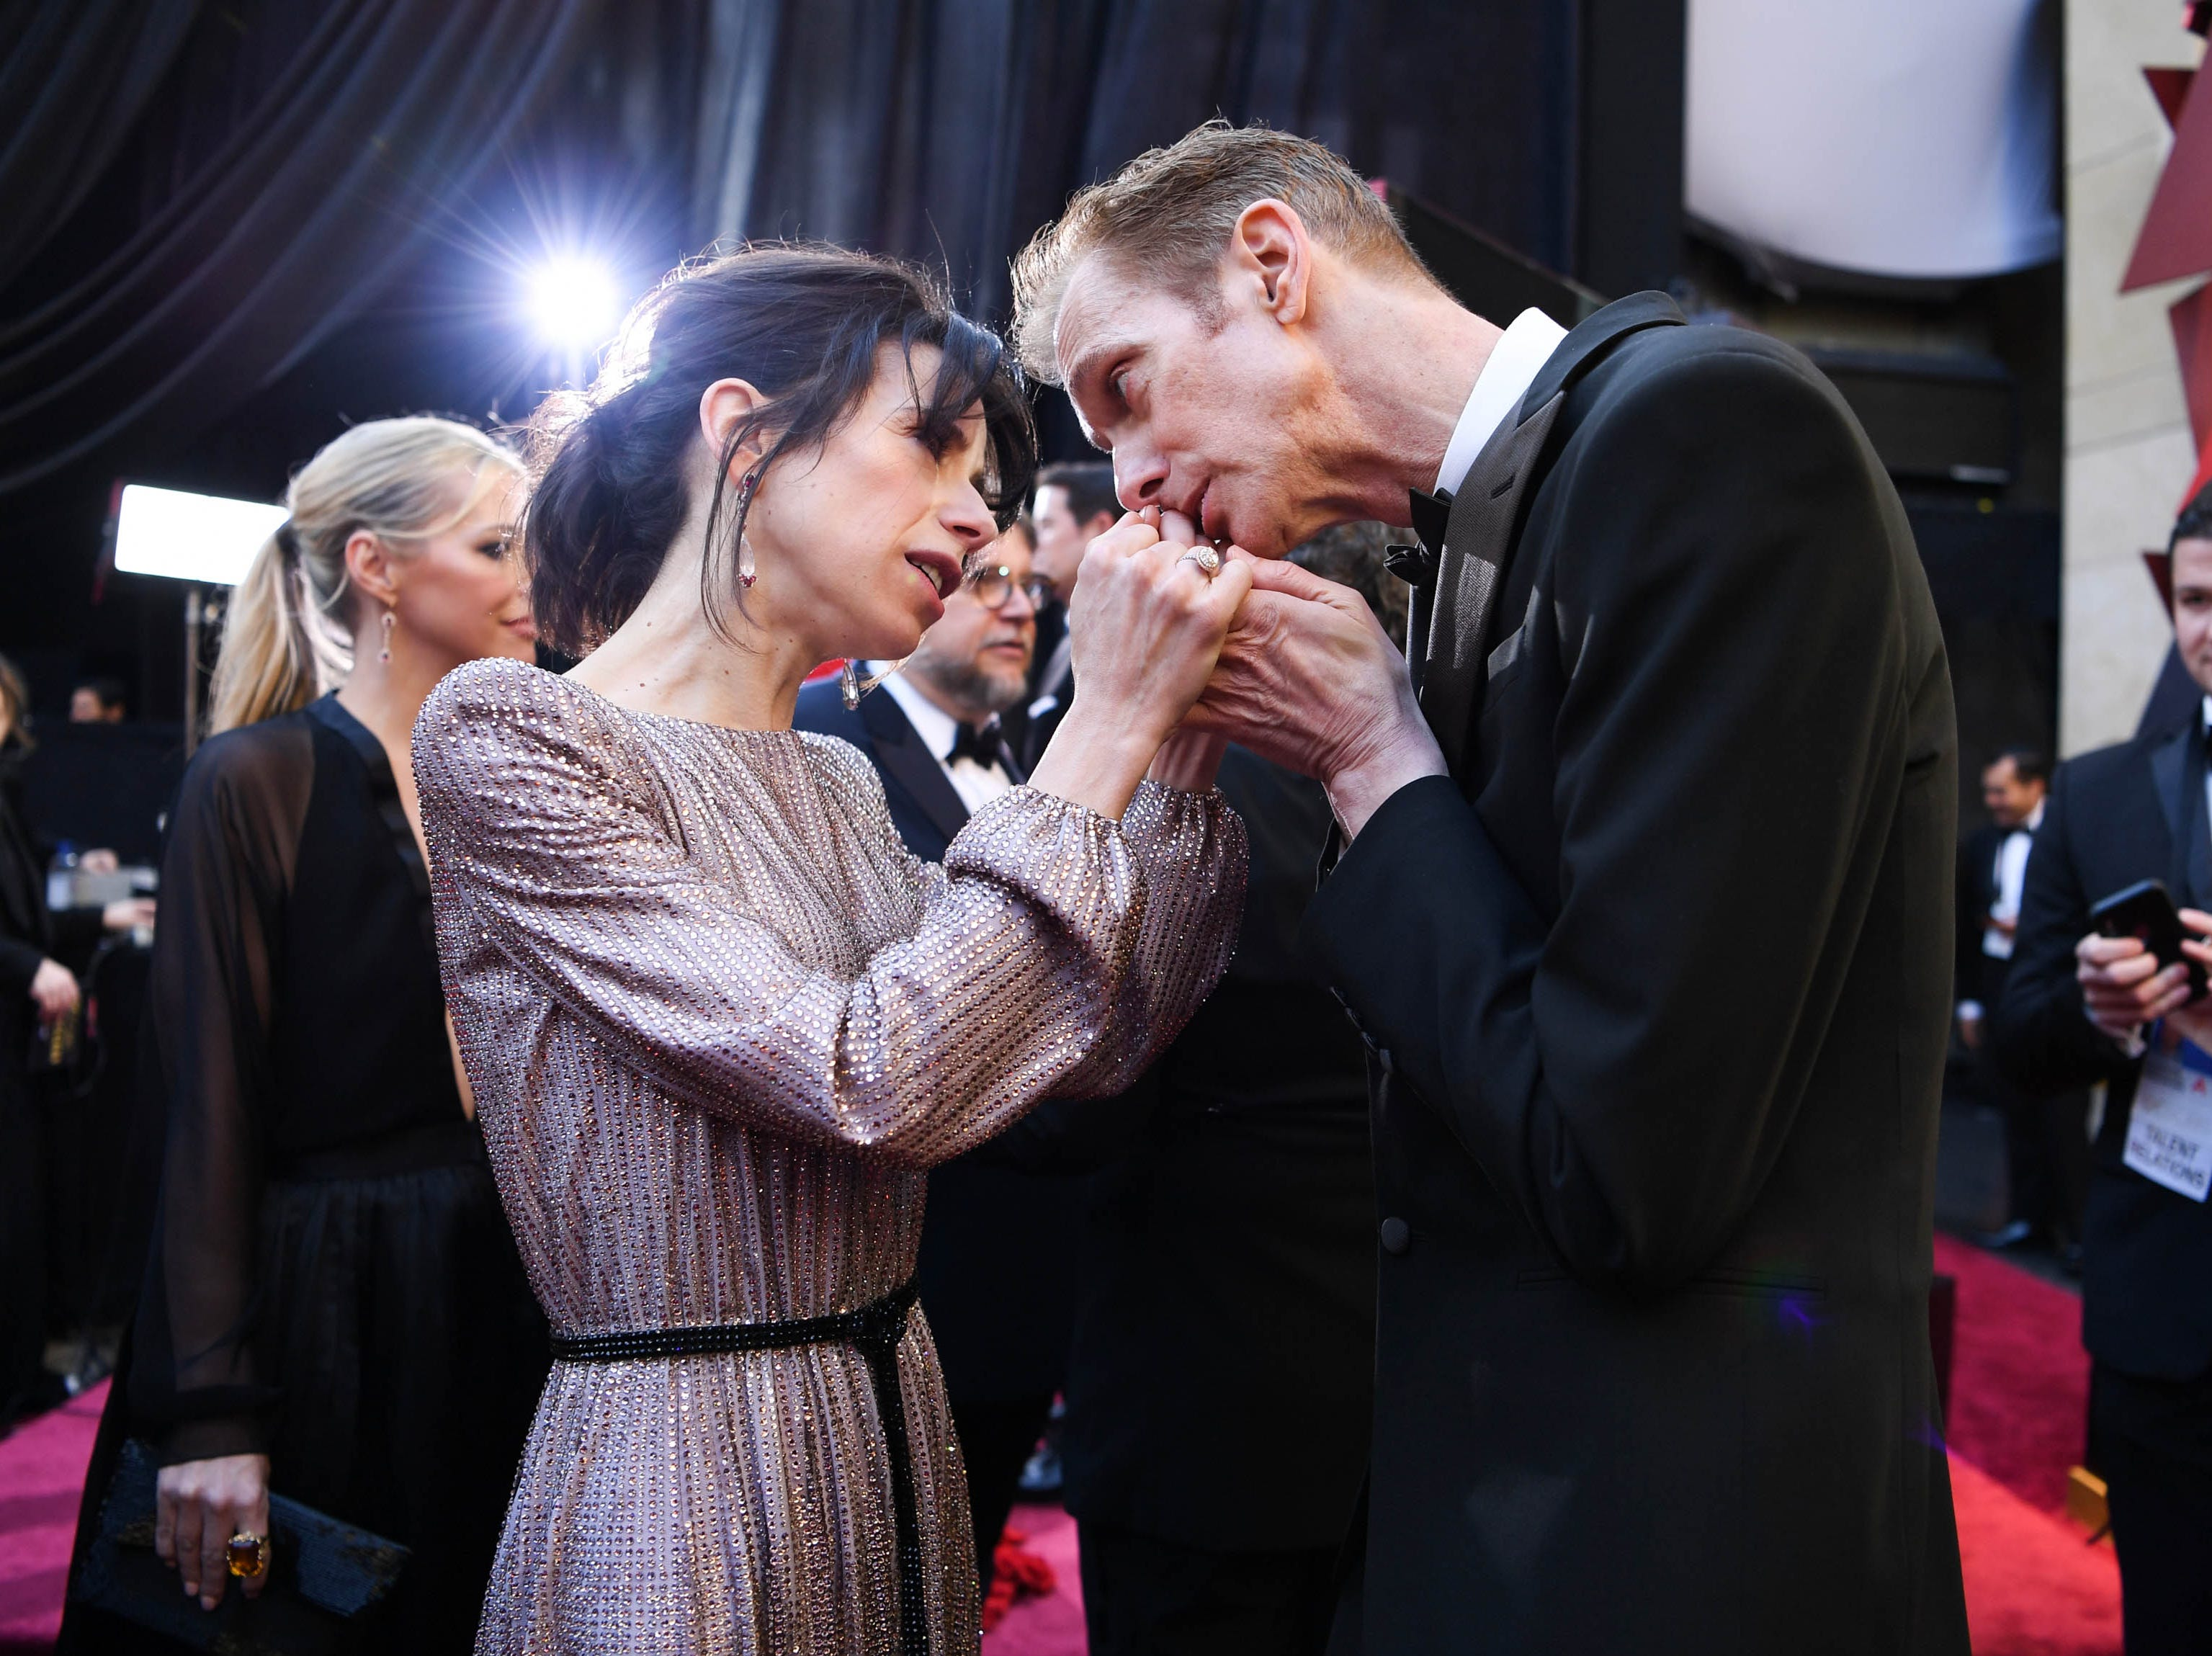 March 4, 2018: Sally Hawkins and Doug Jones share a moment on the red carpet at the 90th Academy Awards.